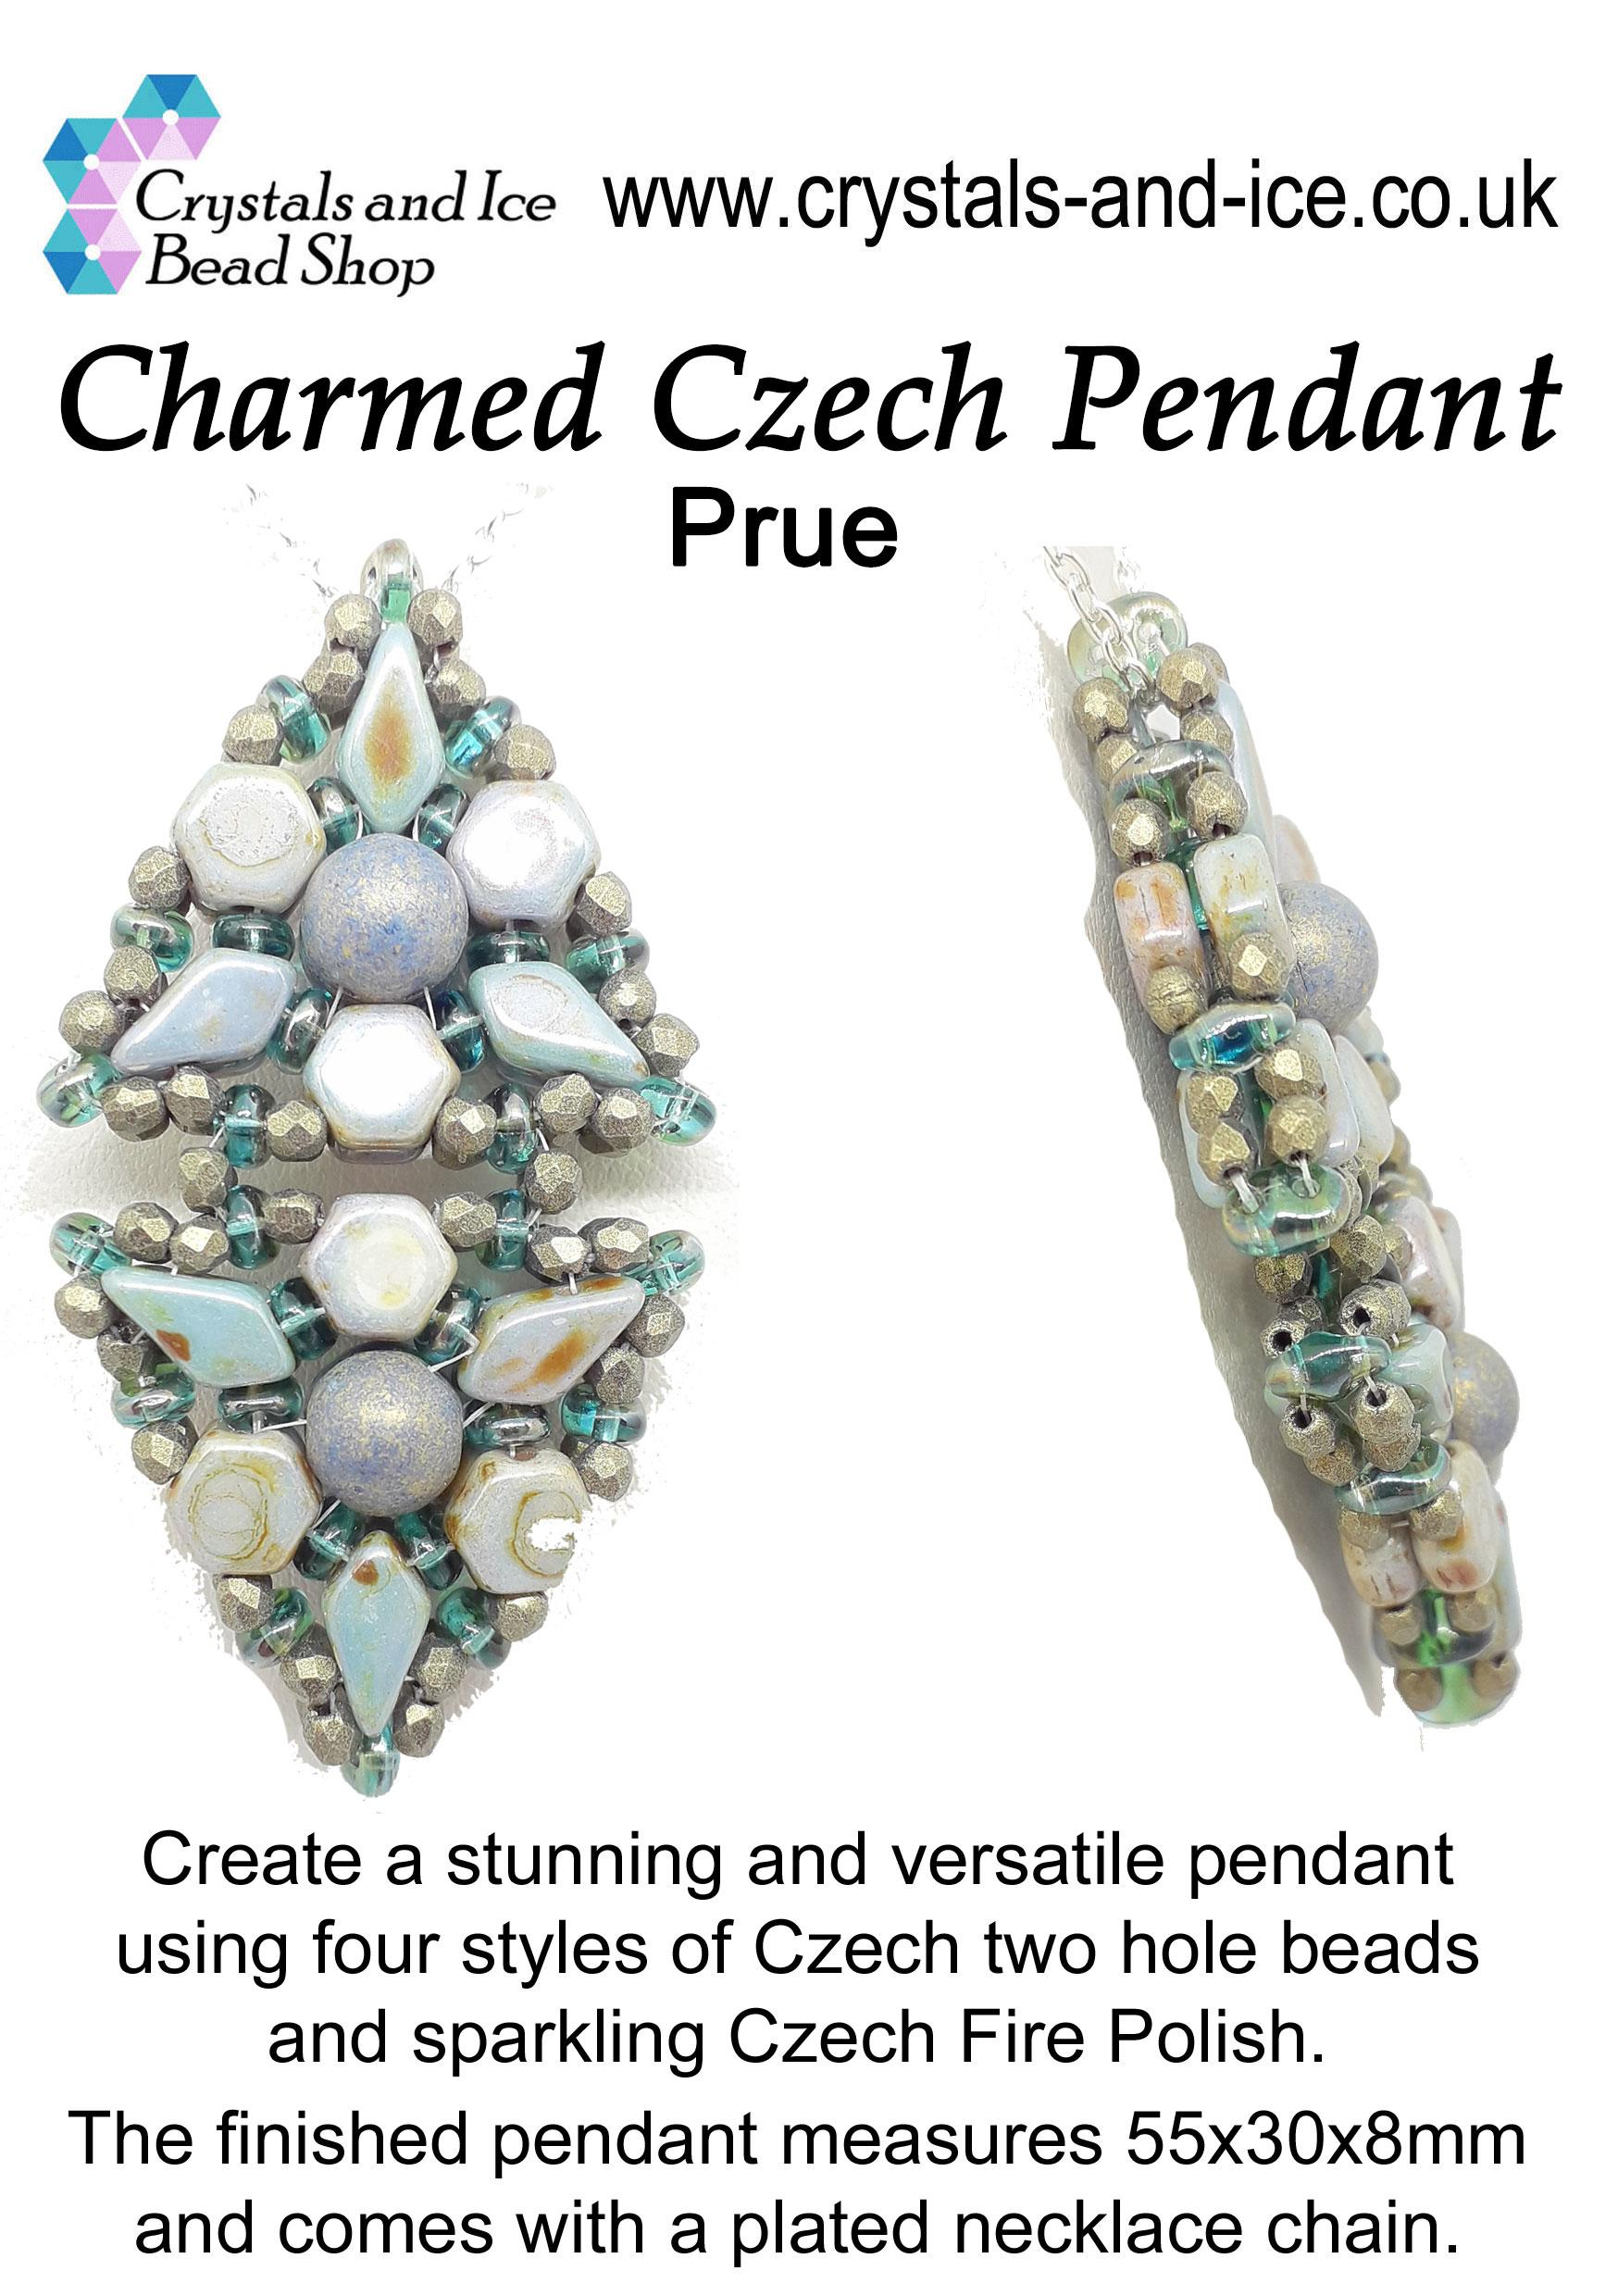 Charmed Czech Pendant Kit - Prue